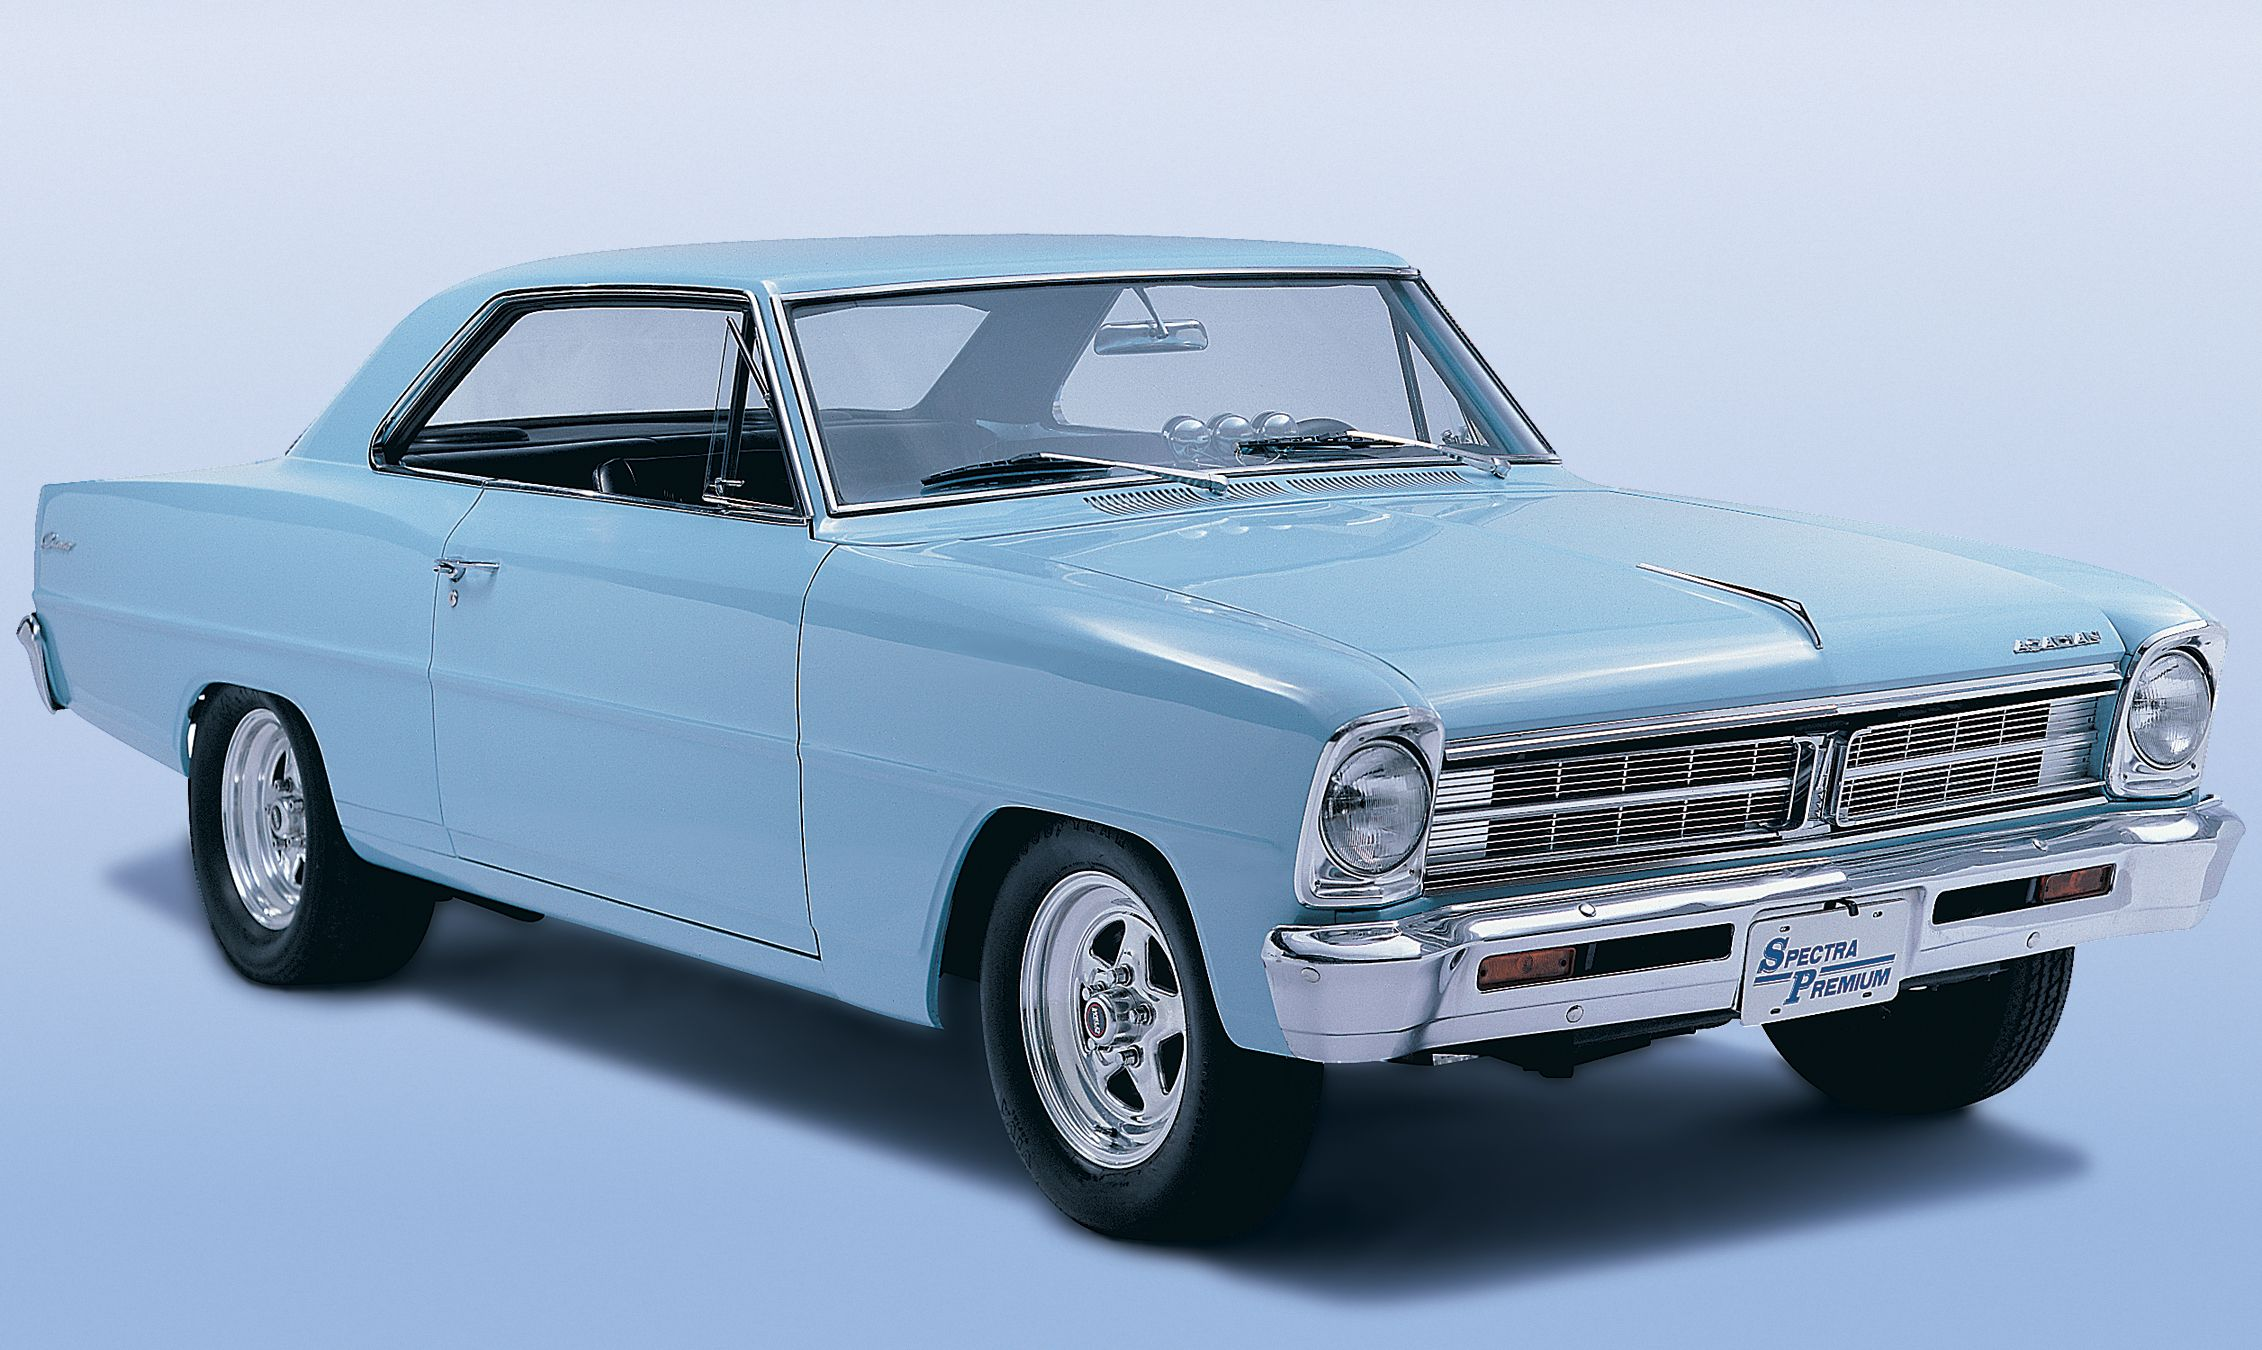 1967 Acadian Canso Canadian Version Of Chevy Ii Nova Chevrolet